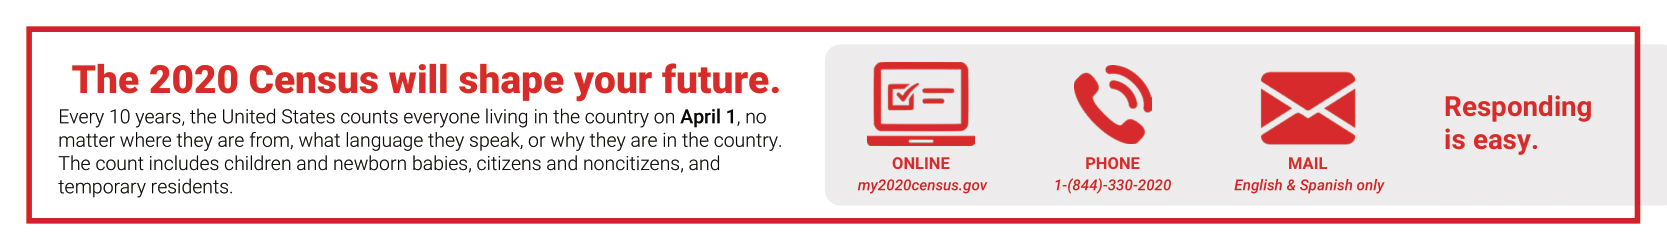 Census 2020 - Christine Chen